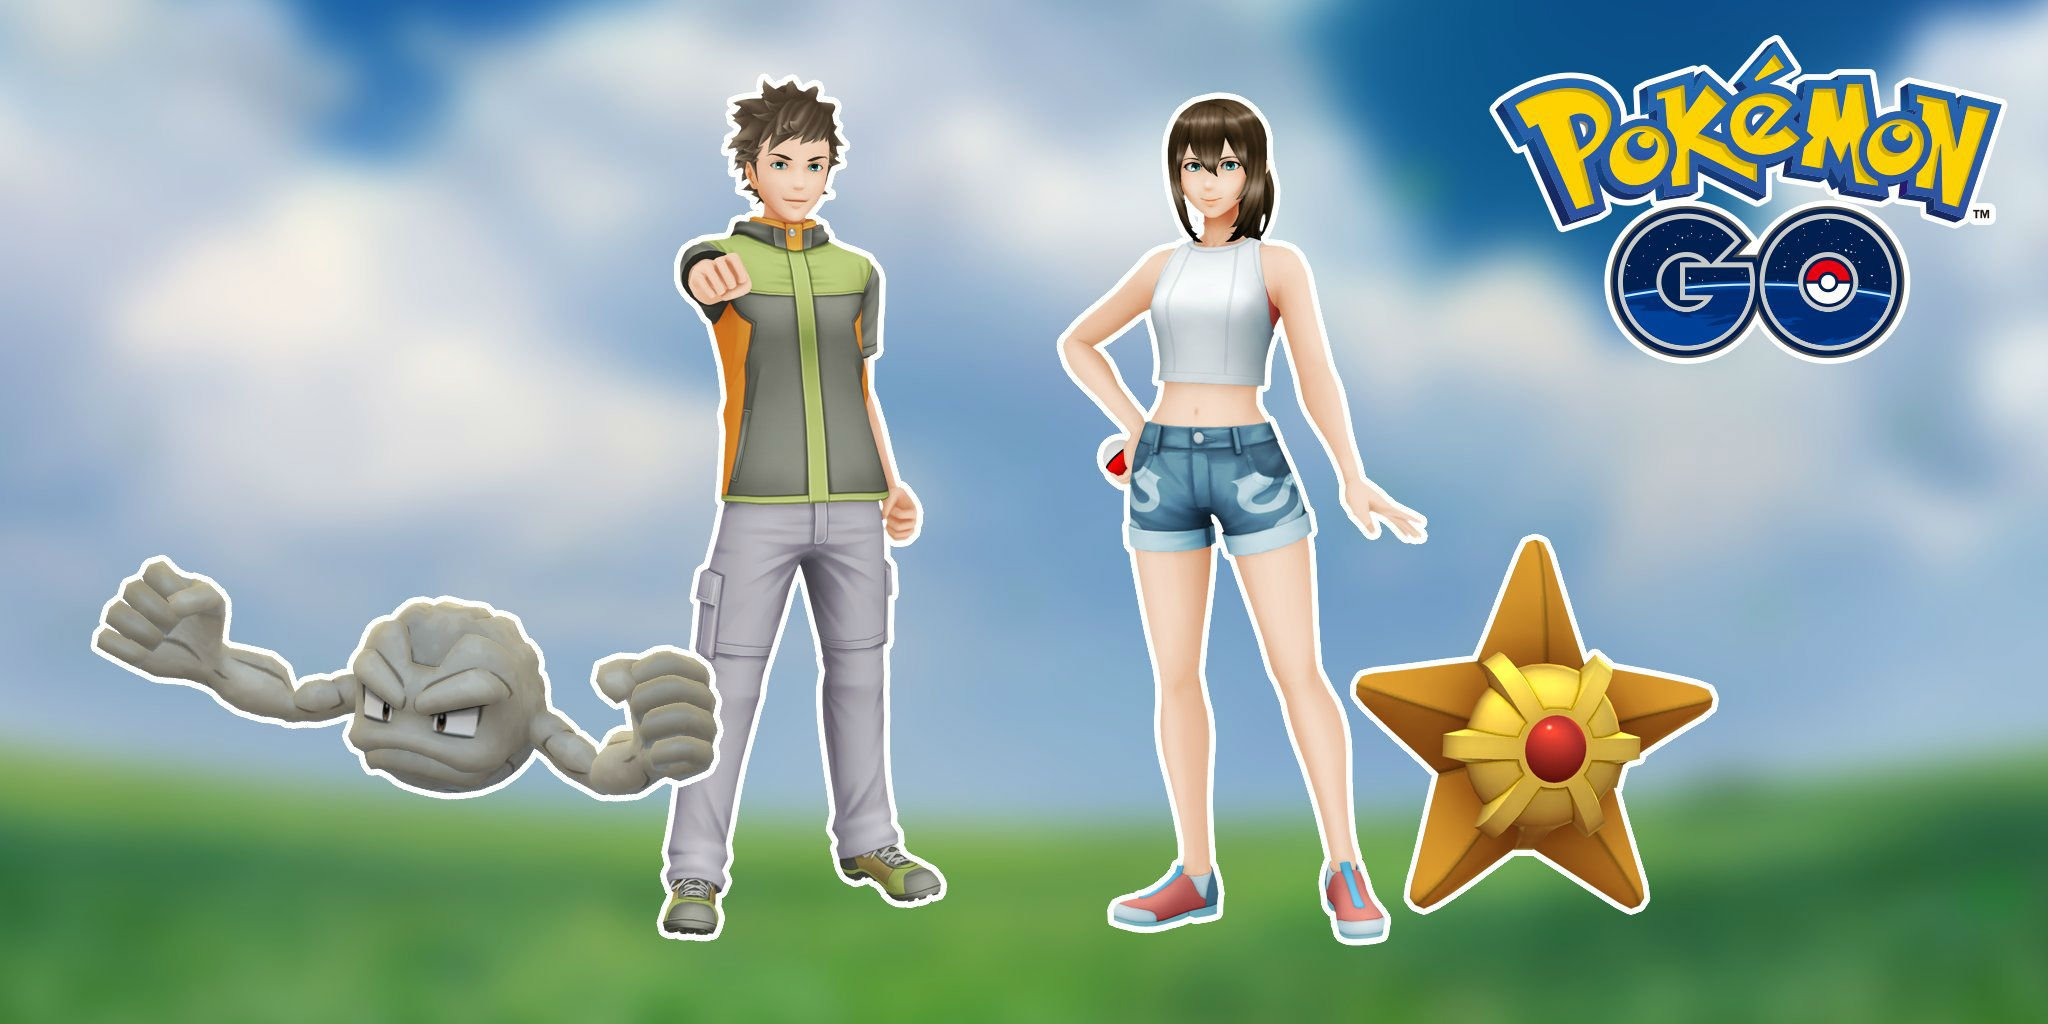 Pokemon Go further mines nostalgia with Misty and Brock outfits screenshot